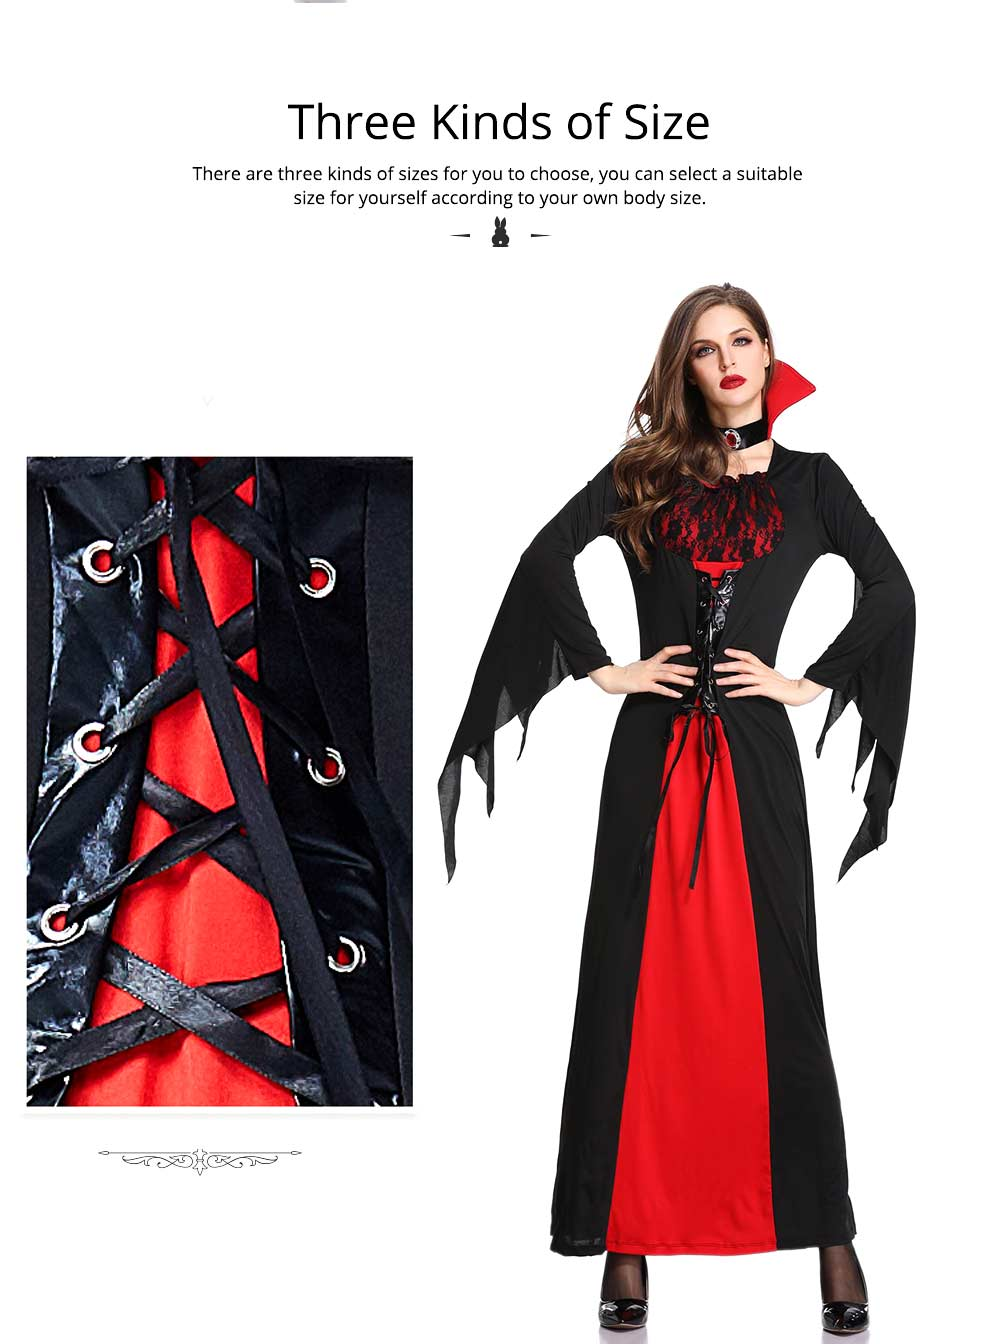 Vampire Costume, Queen Dress for Halloween Easter Christmas, Halloween Costume for Women Adult Cosplay Dress Role Playing Costume 2